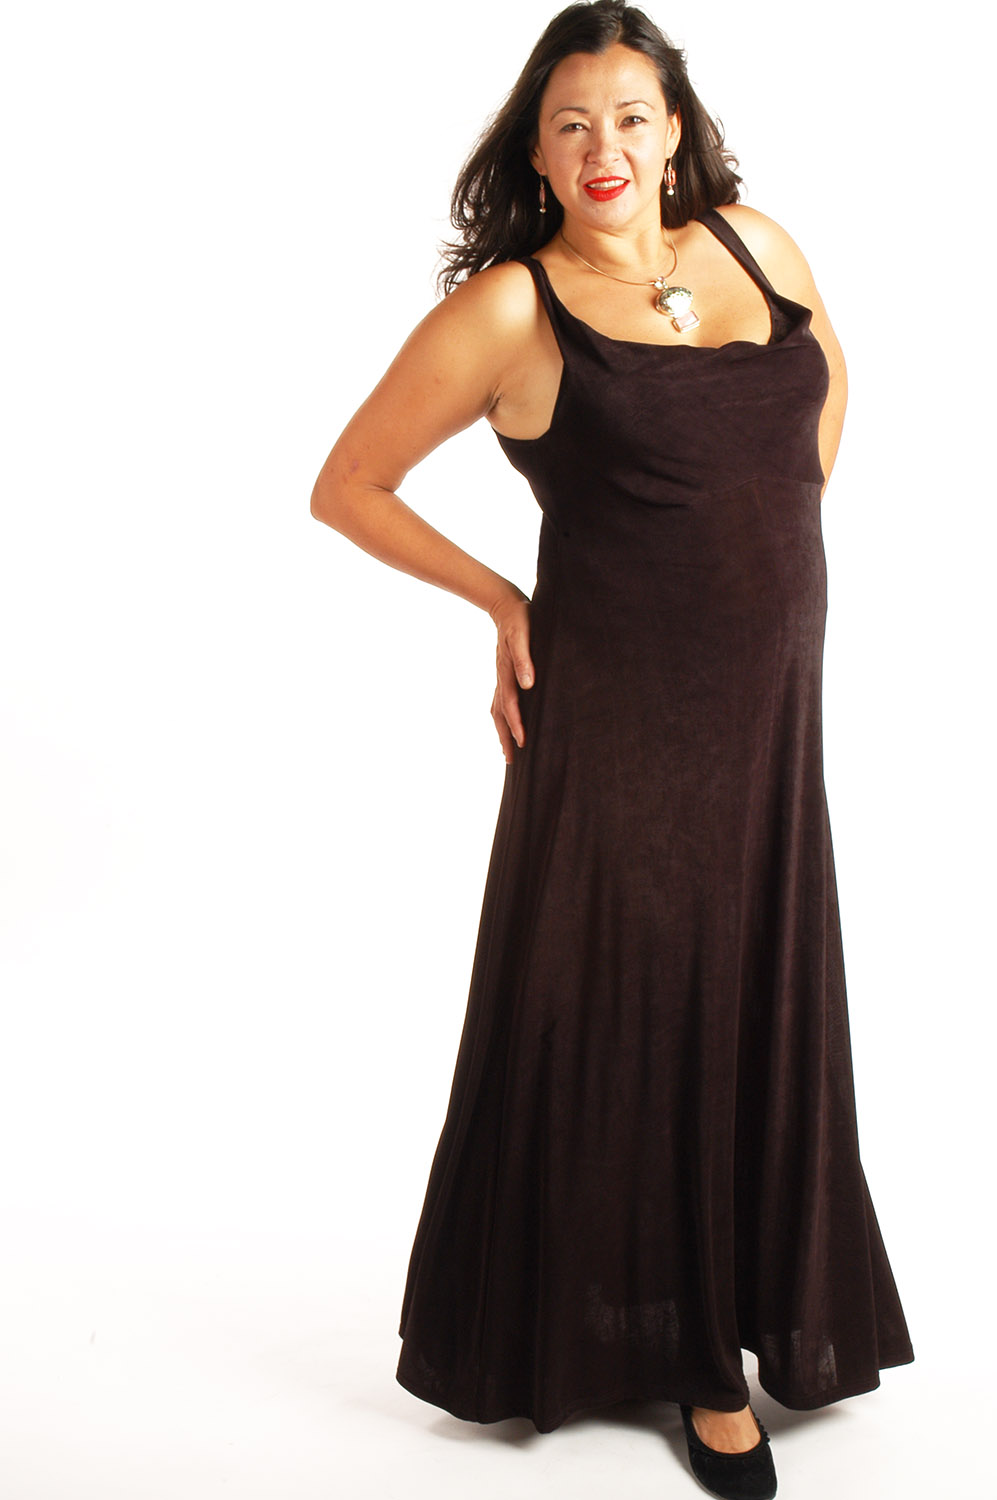 Plus Size Empire Evening Gown Sleeveless Black Slinky Sizes 14 - 24